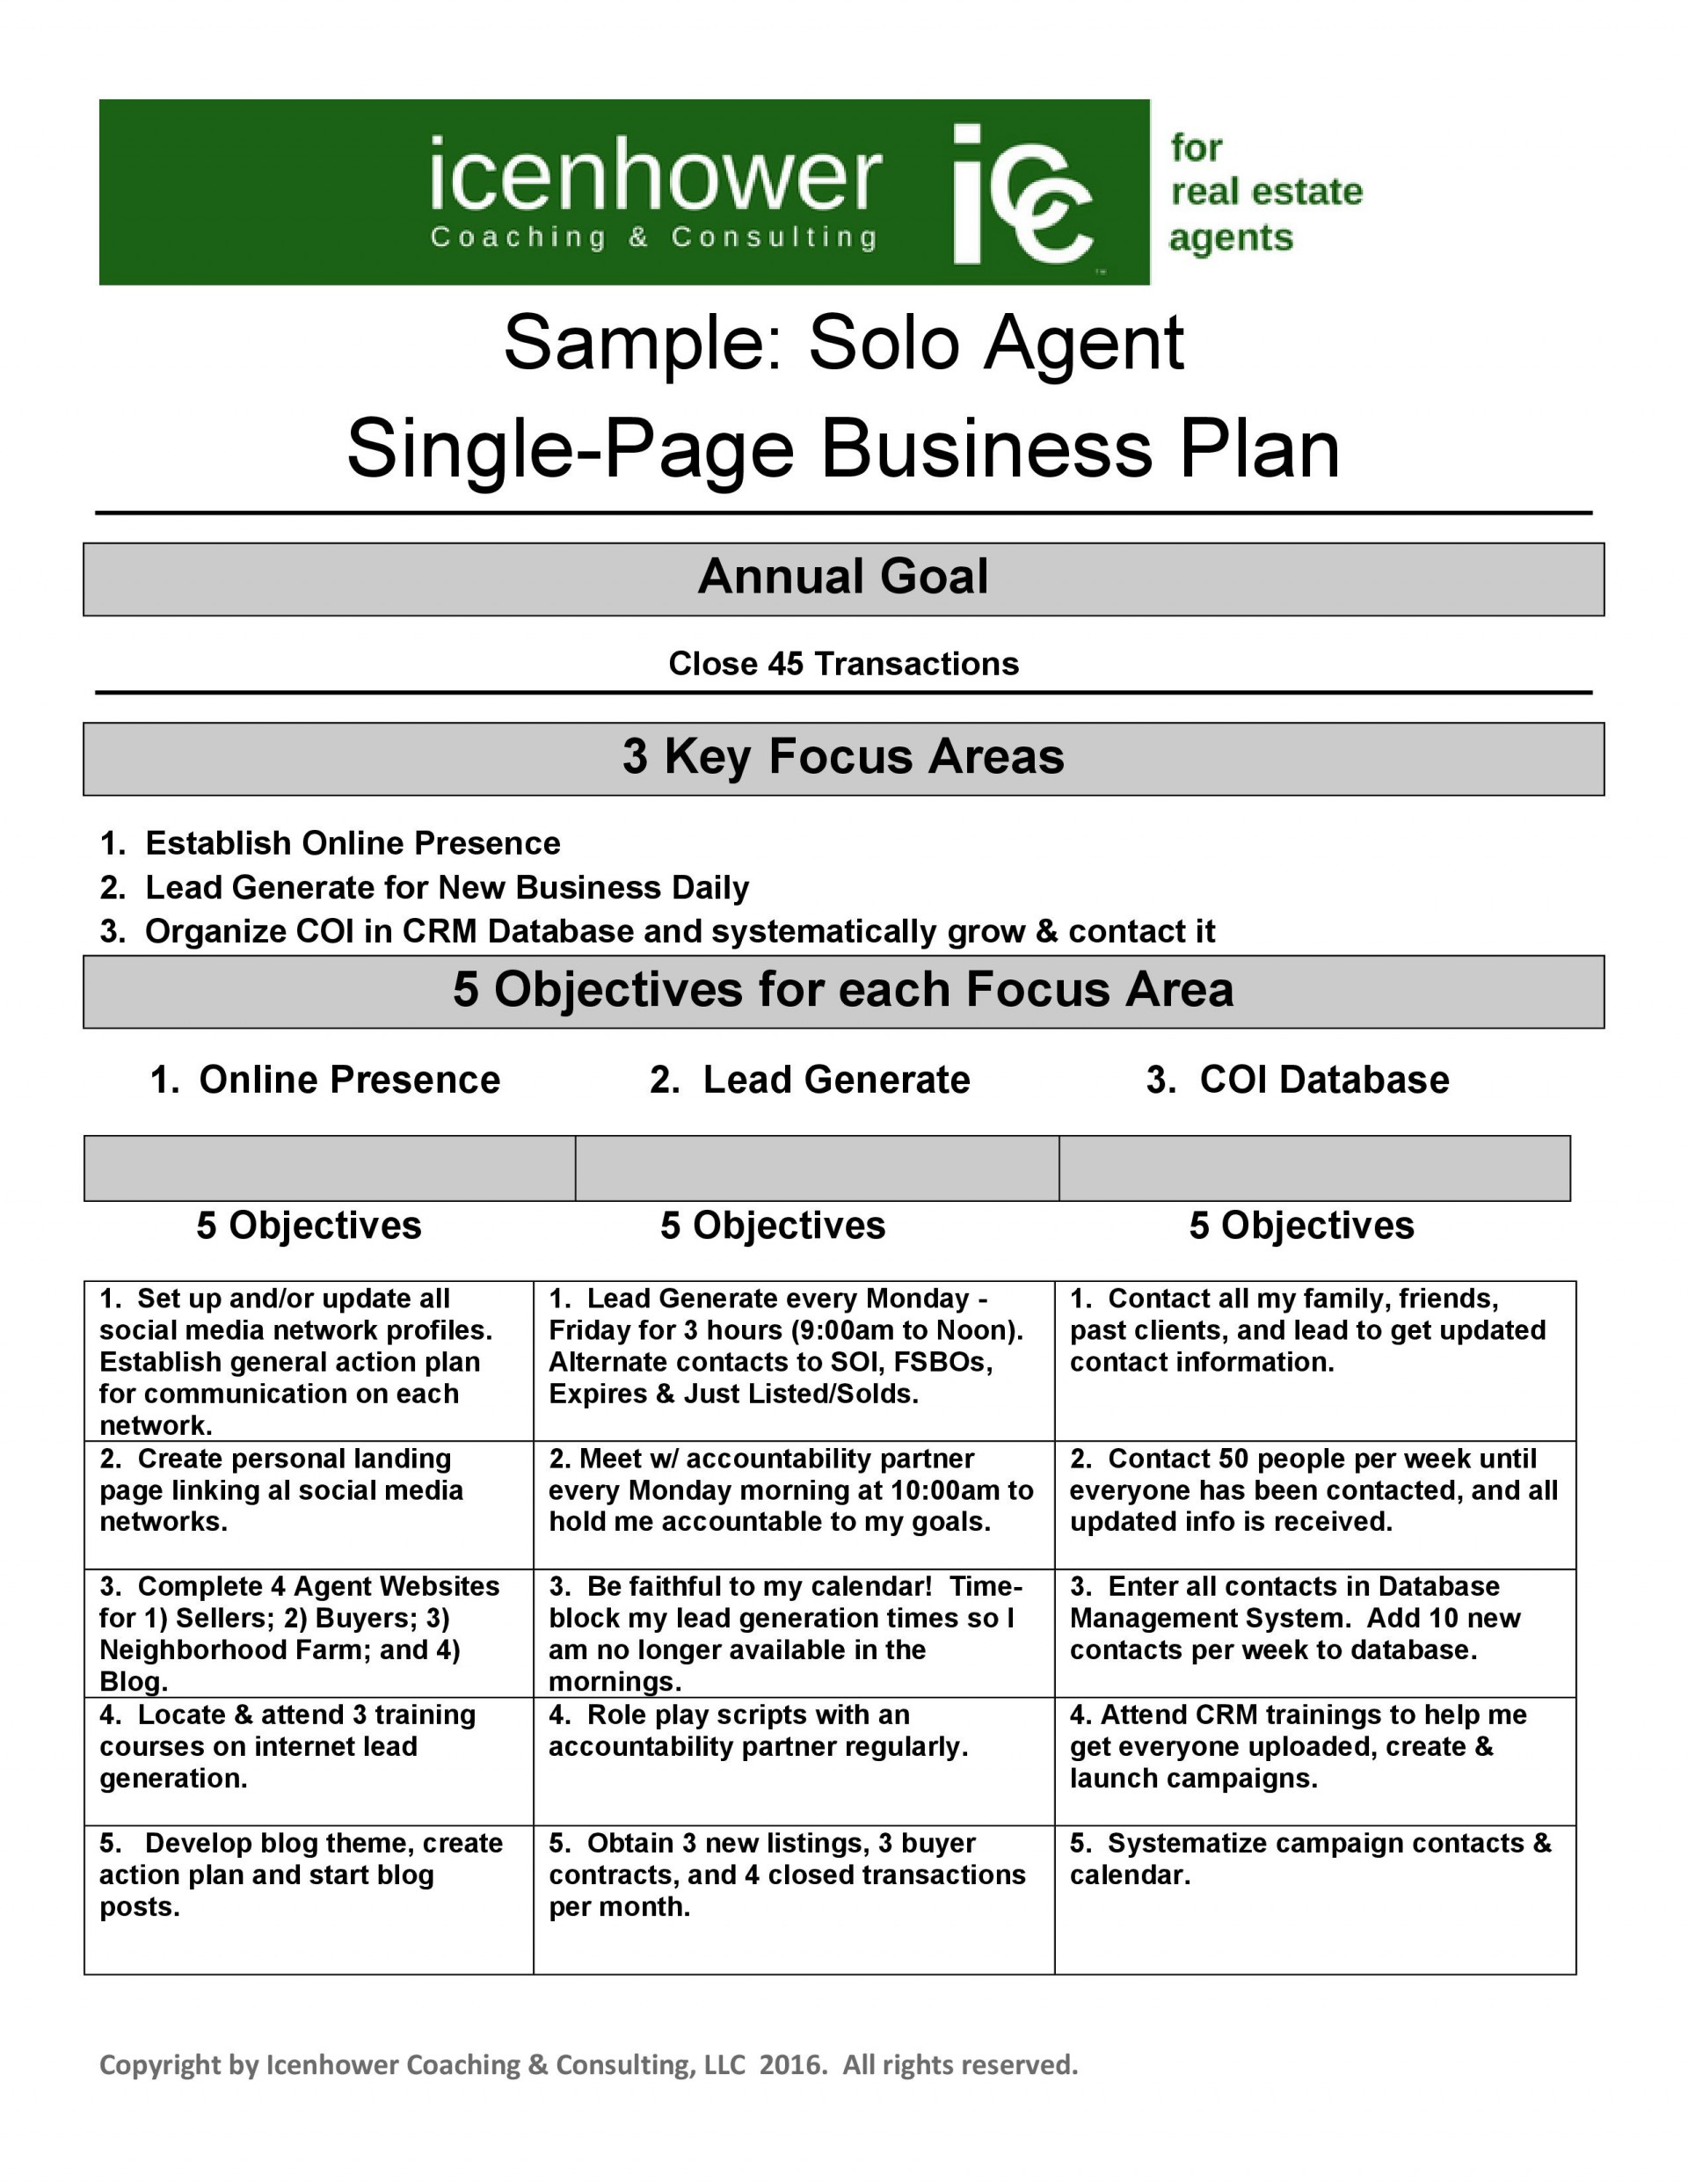 007 Astounding Real Estate Busines Plan Template Image  Free Download Investing Pdf Company Example1920